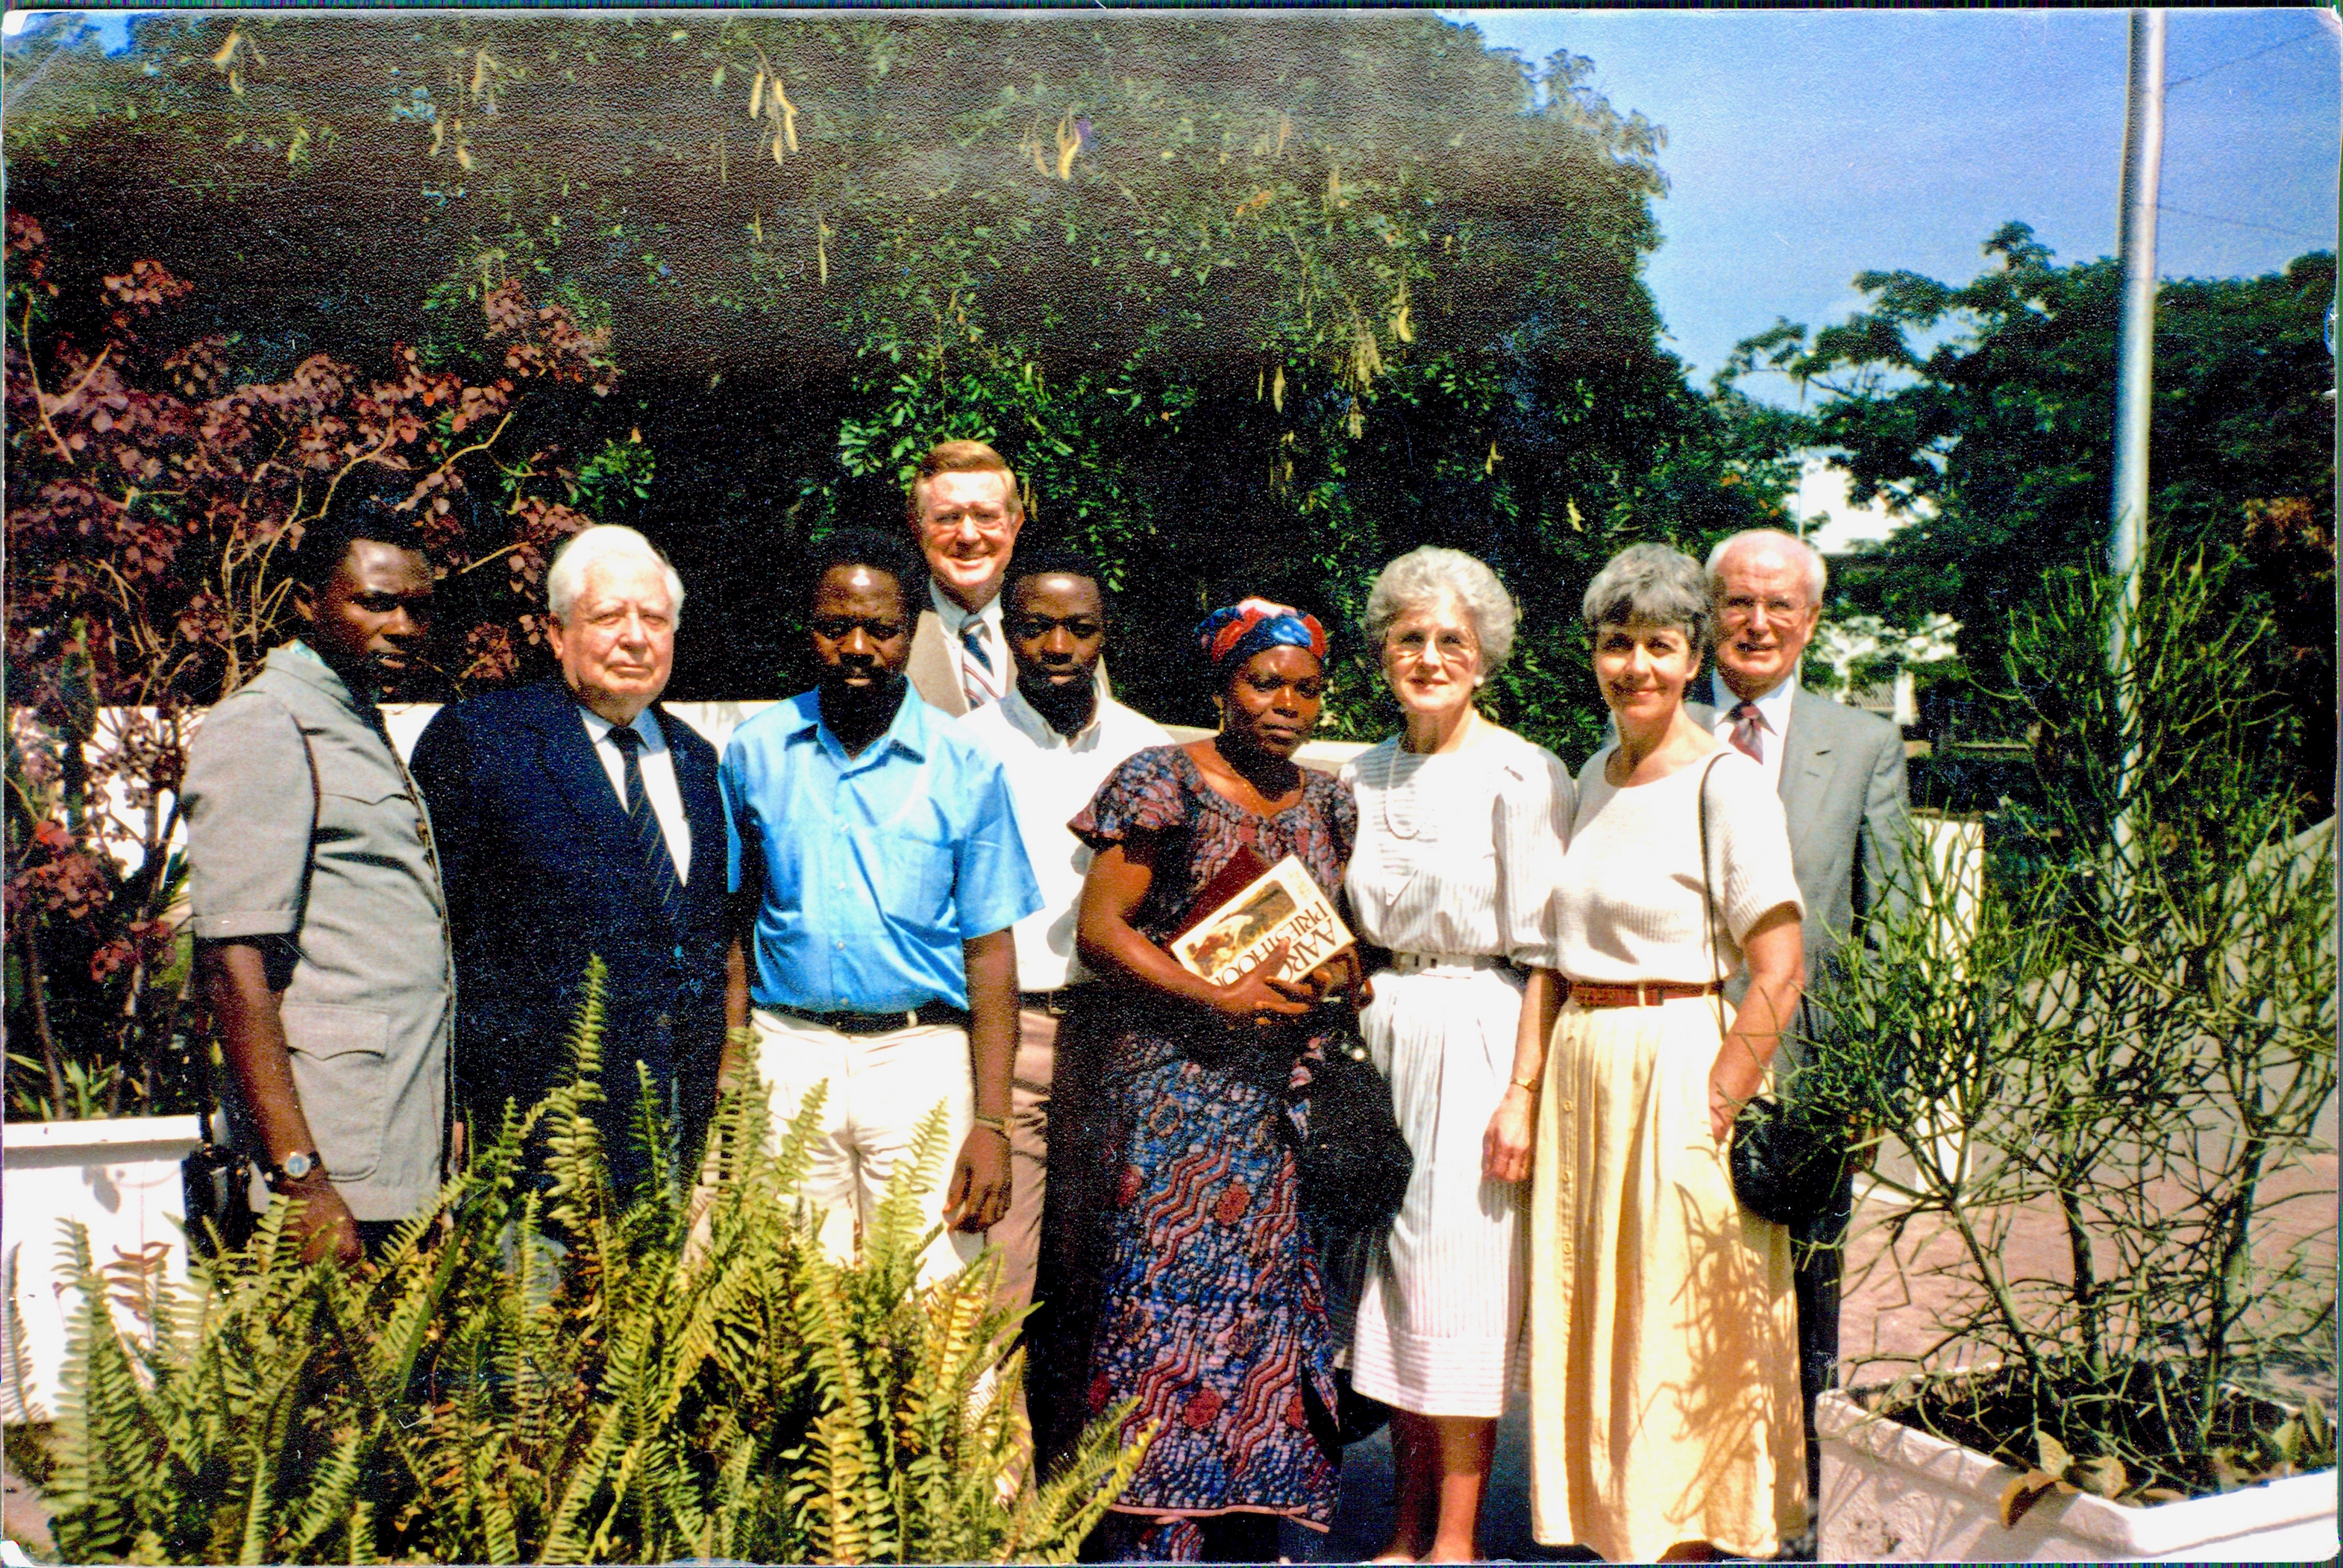 David M. Kennedy, second from left, a special representative of the First Presidency, and Oscar W. McConkie Jr., fourth from the left and in the back, legal counsel for the Church, were key in helping get official recognition in 1986 for the Church in Zaire (now the Democratic Republic of the Congo). They are joined by, from left, a Mr. Minani of the Zaire intelligence office; Mucioko Banza, Mbuyi Nkitabungi, Régine Banza, Sister Jean Hutchings, Judith McConkie and Elder R. Bay Hutchings.